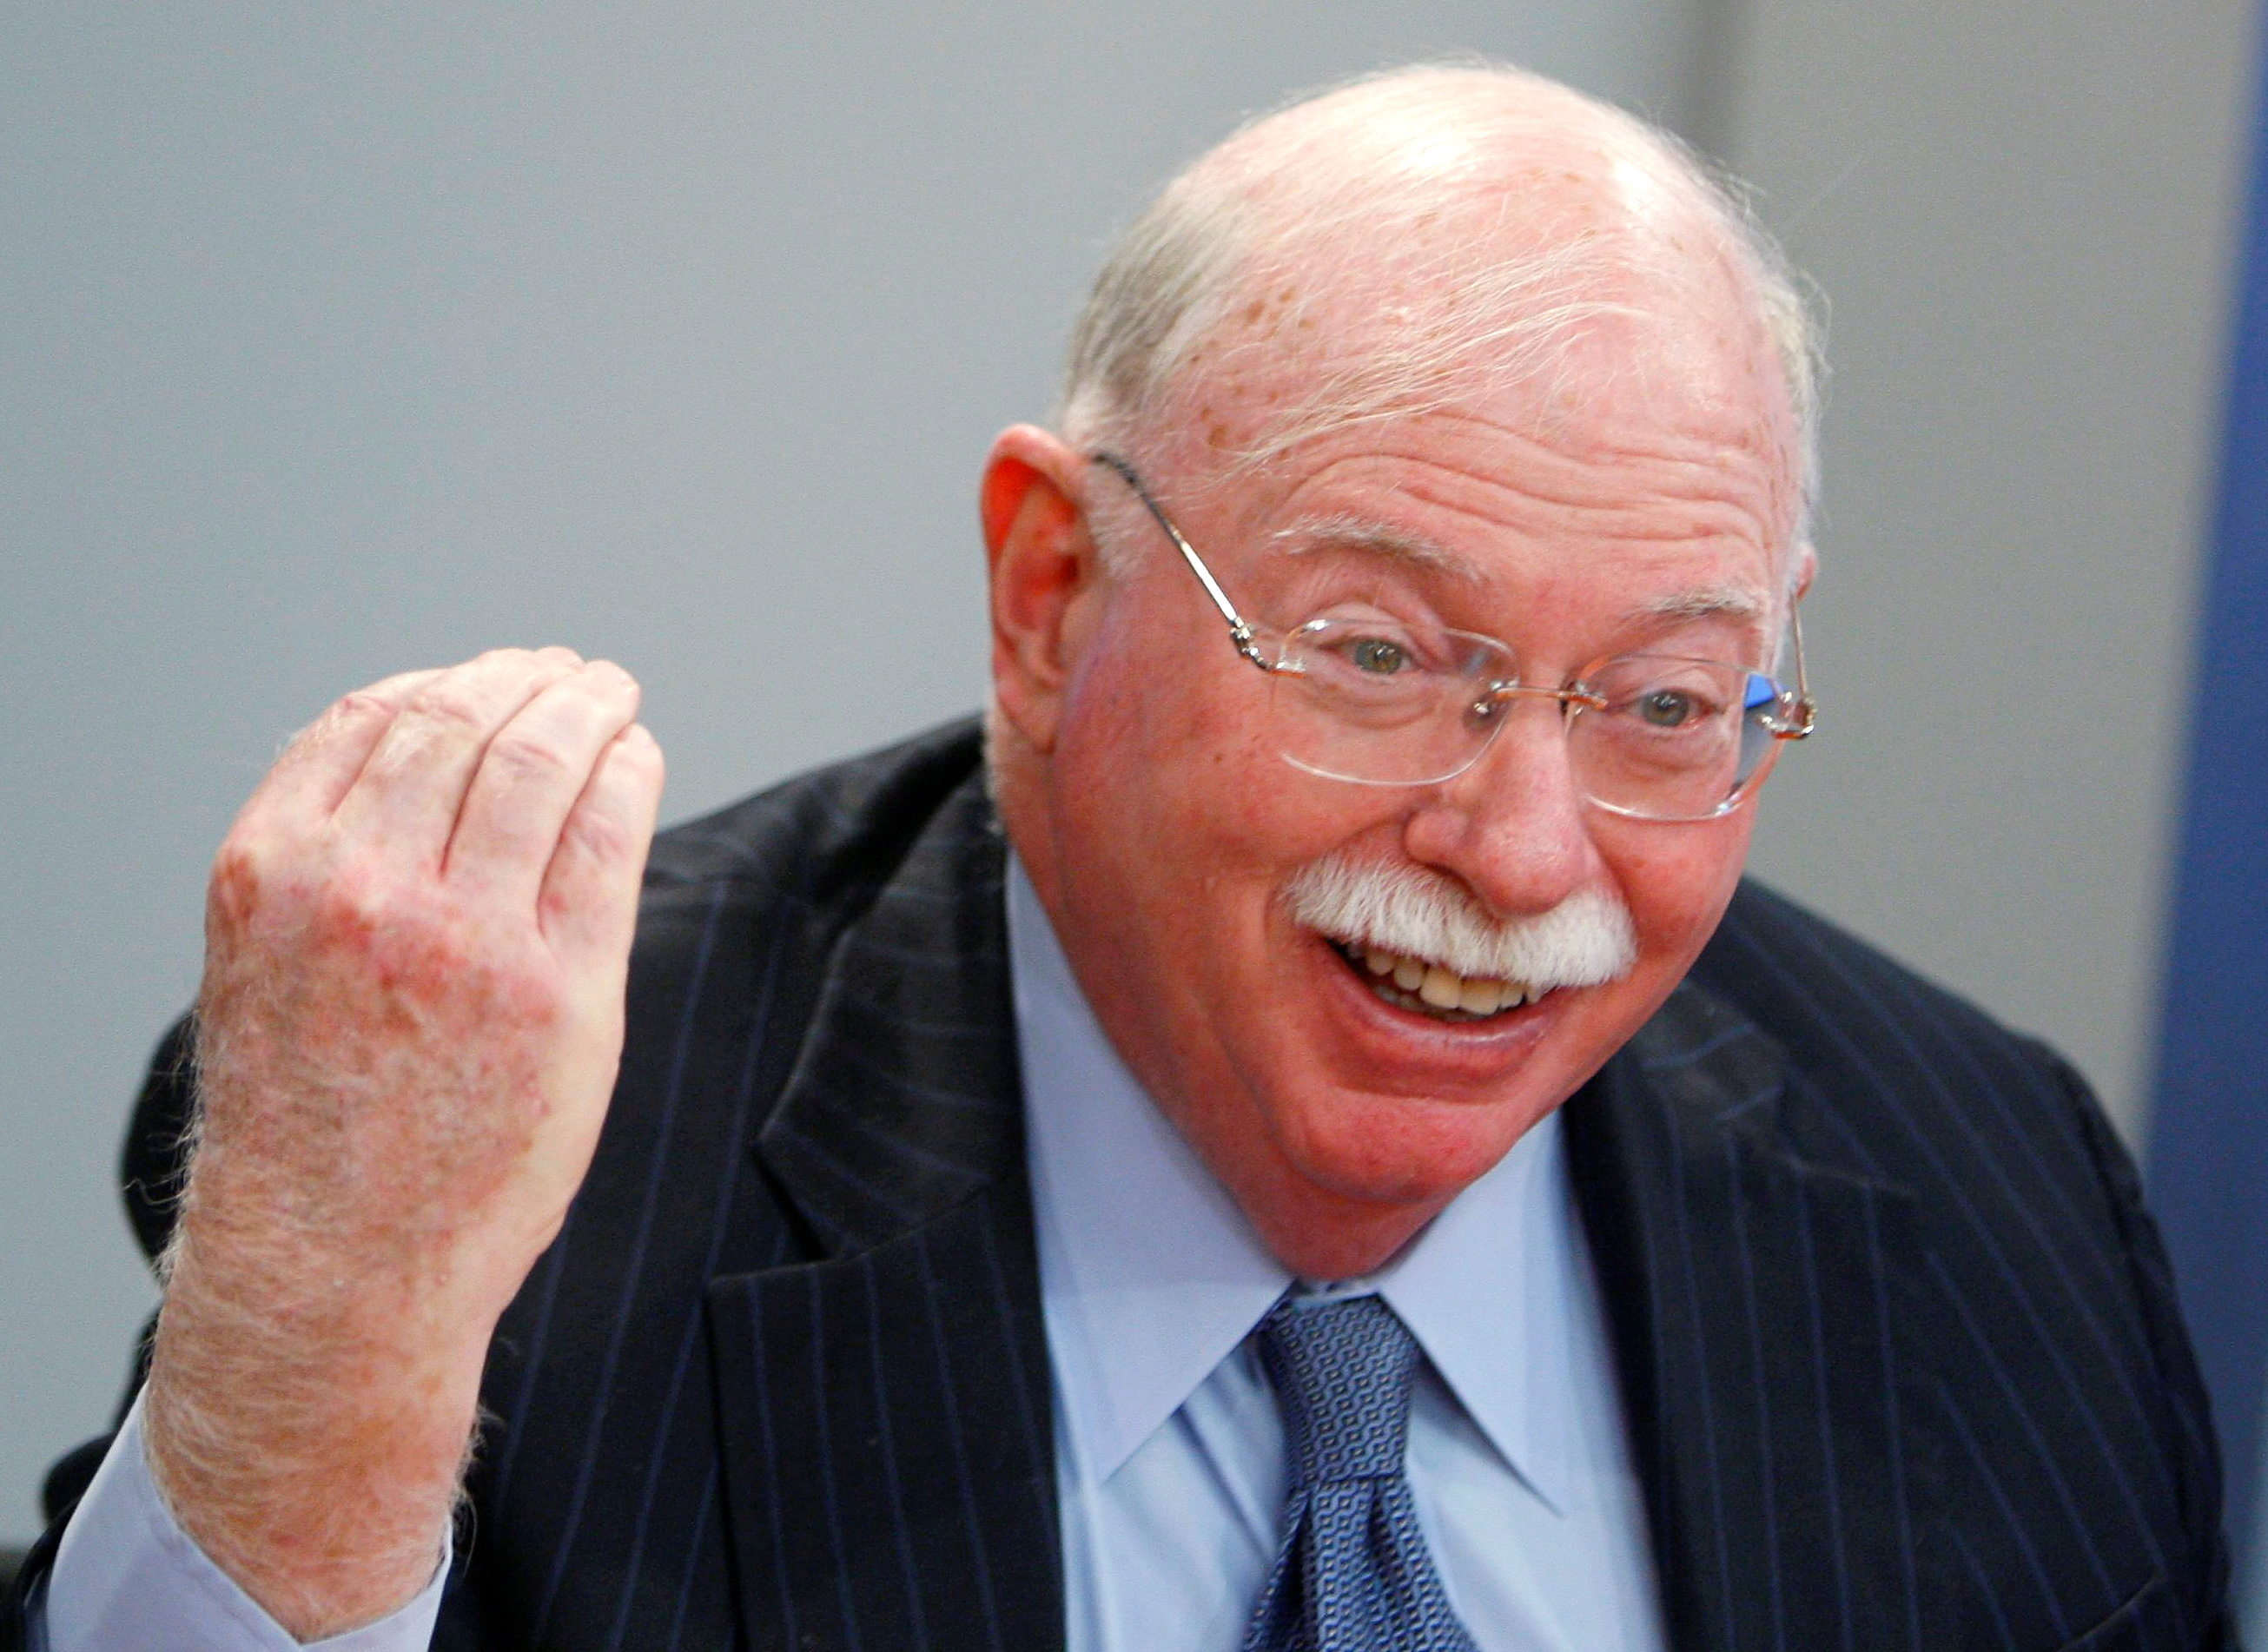 Michael Steinhardt, legendary hedge fund manager, speaks at the Reuters Investment Summit in New York December 8, 2008.     REUTERS/Brendan McDermid (UNITED STATES)/File Photo